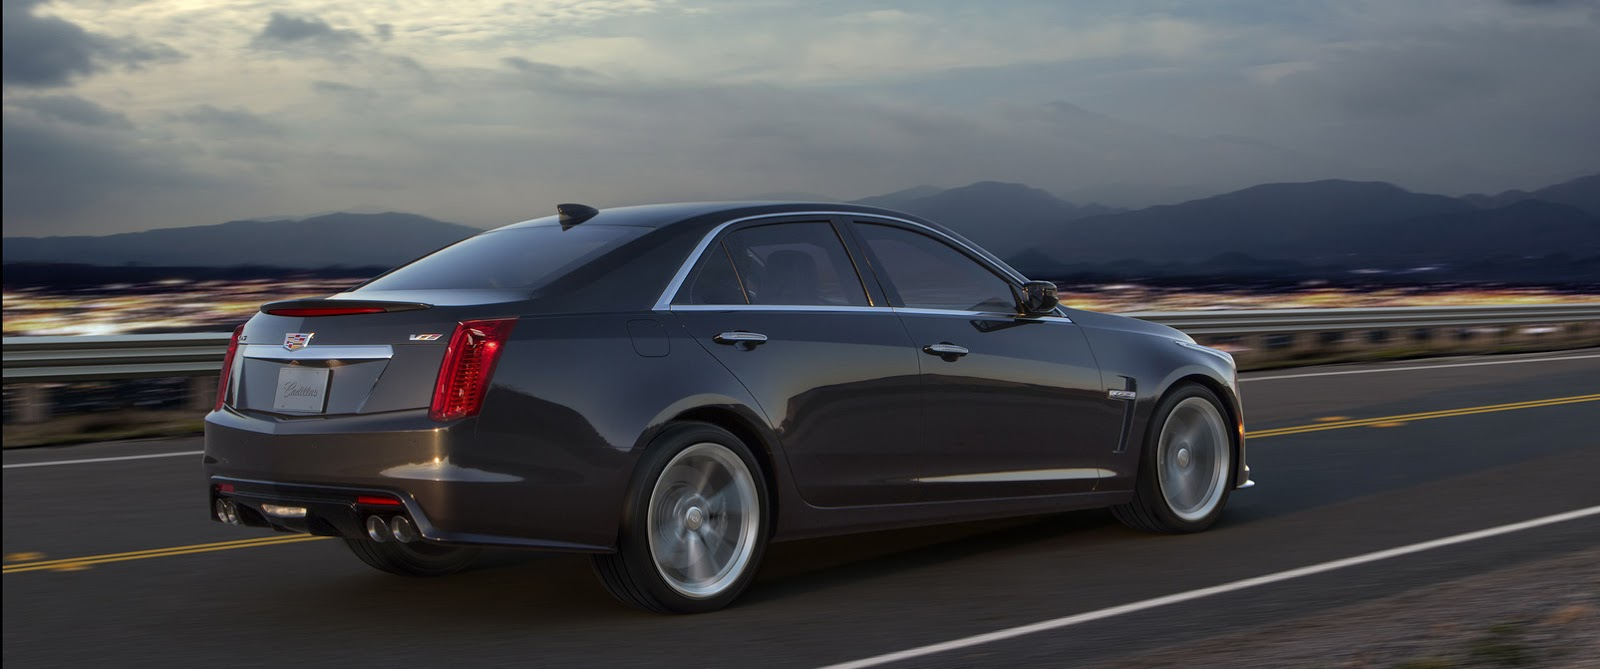 Selection Of New Cadillac Sedans and Crossovers Arriving ...